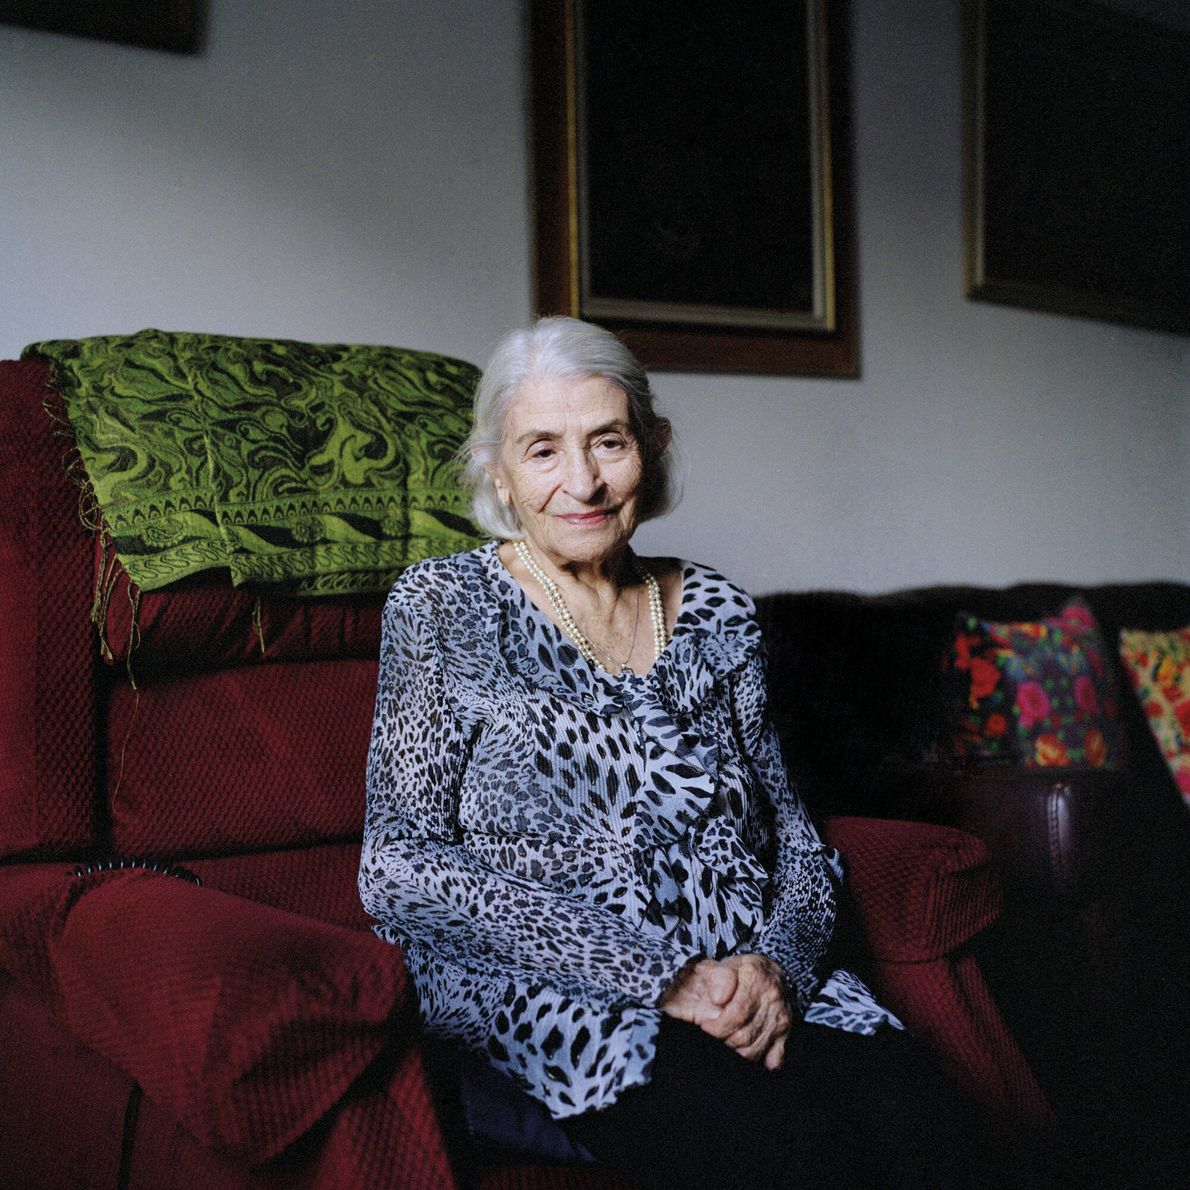 Rita Weiss (1926-2018) Tel Aviv, 2017: Weiss survived several camps, including Auschwitz, where she experienced the ...